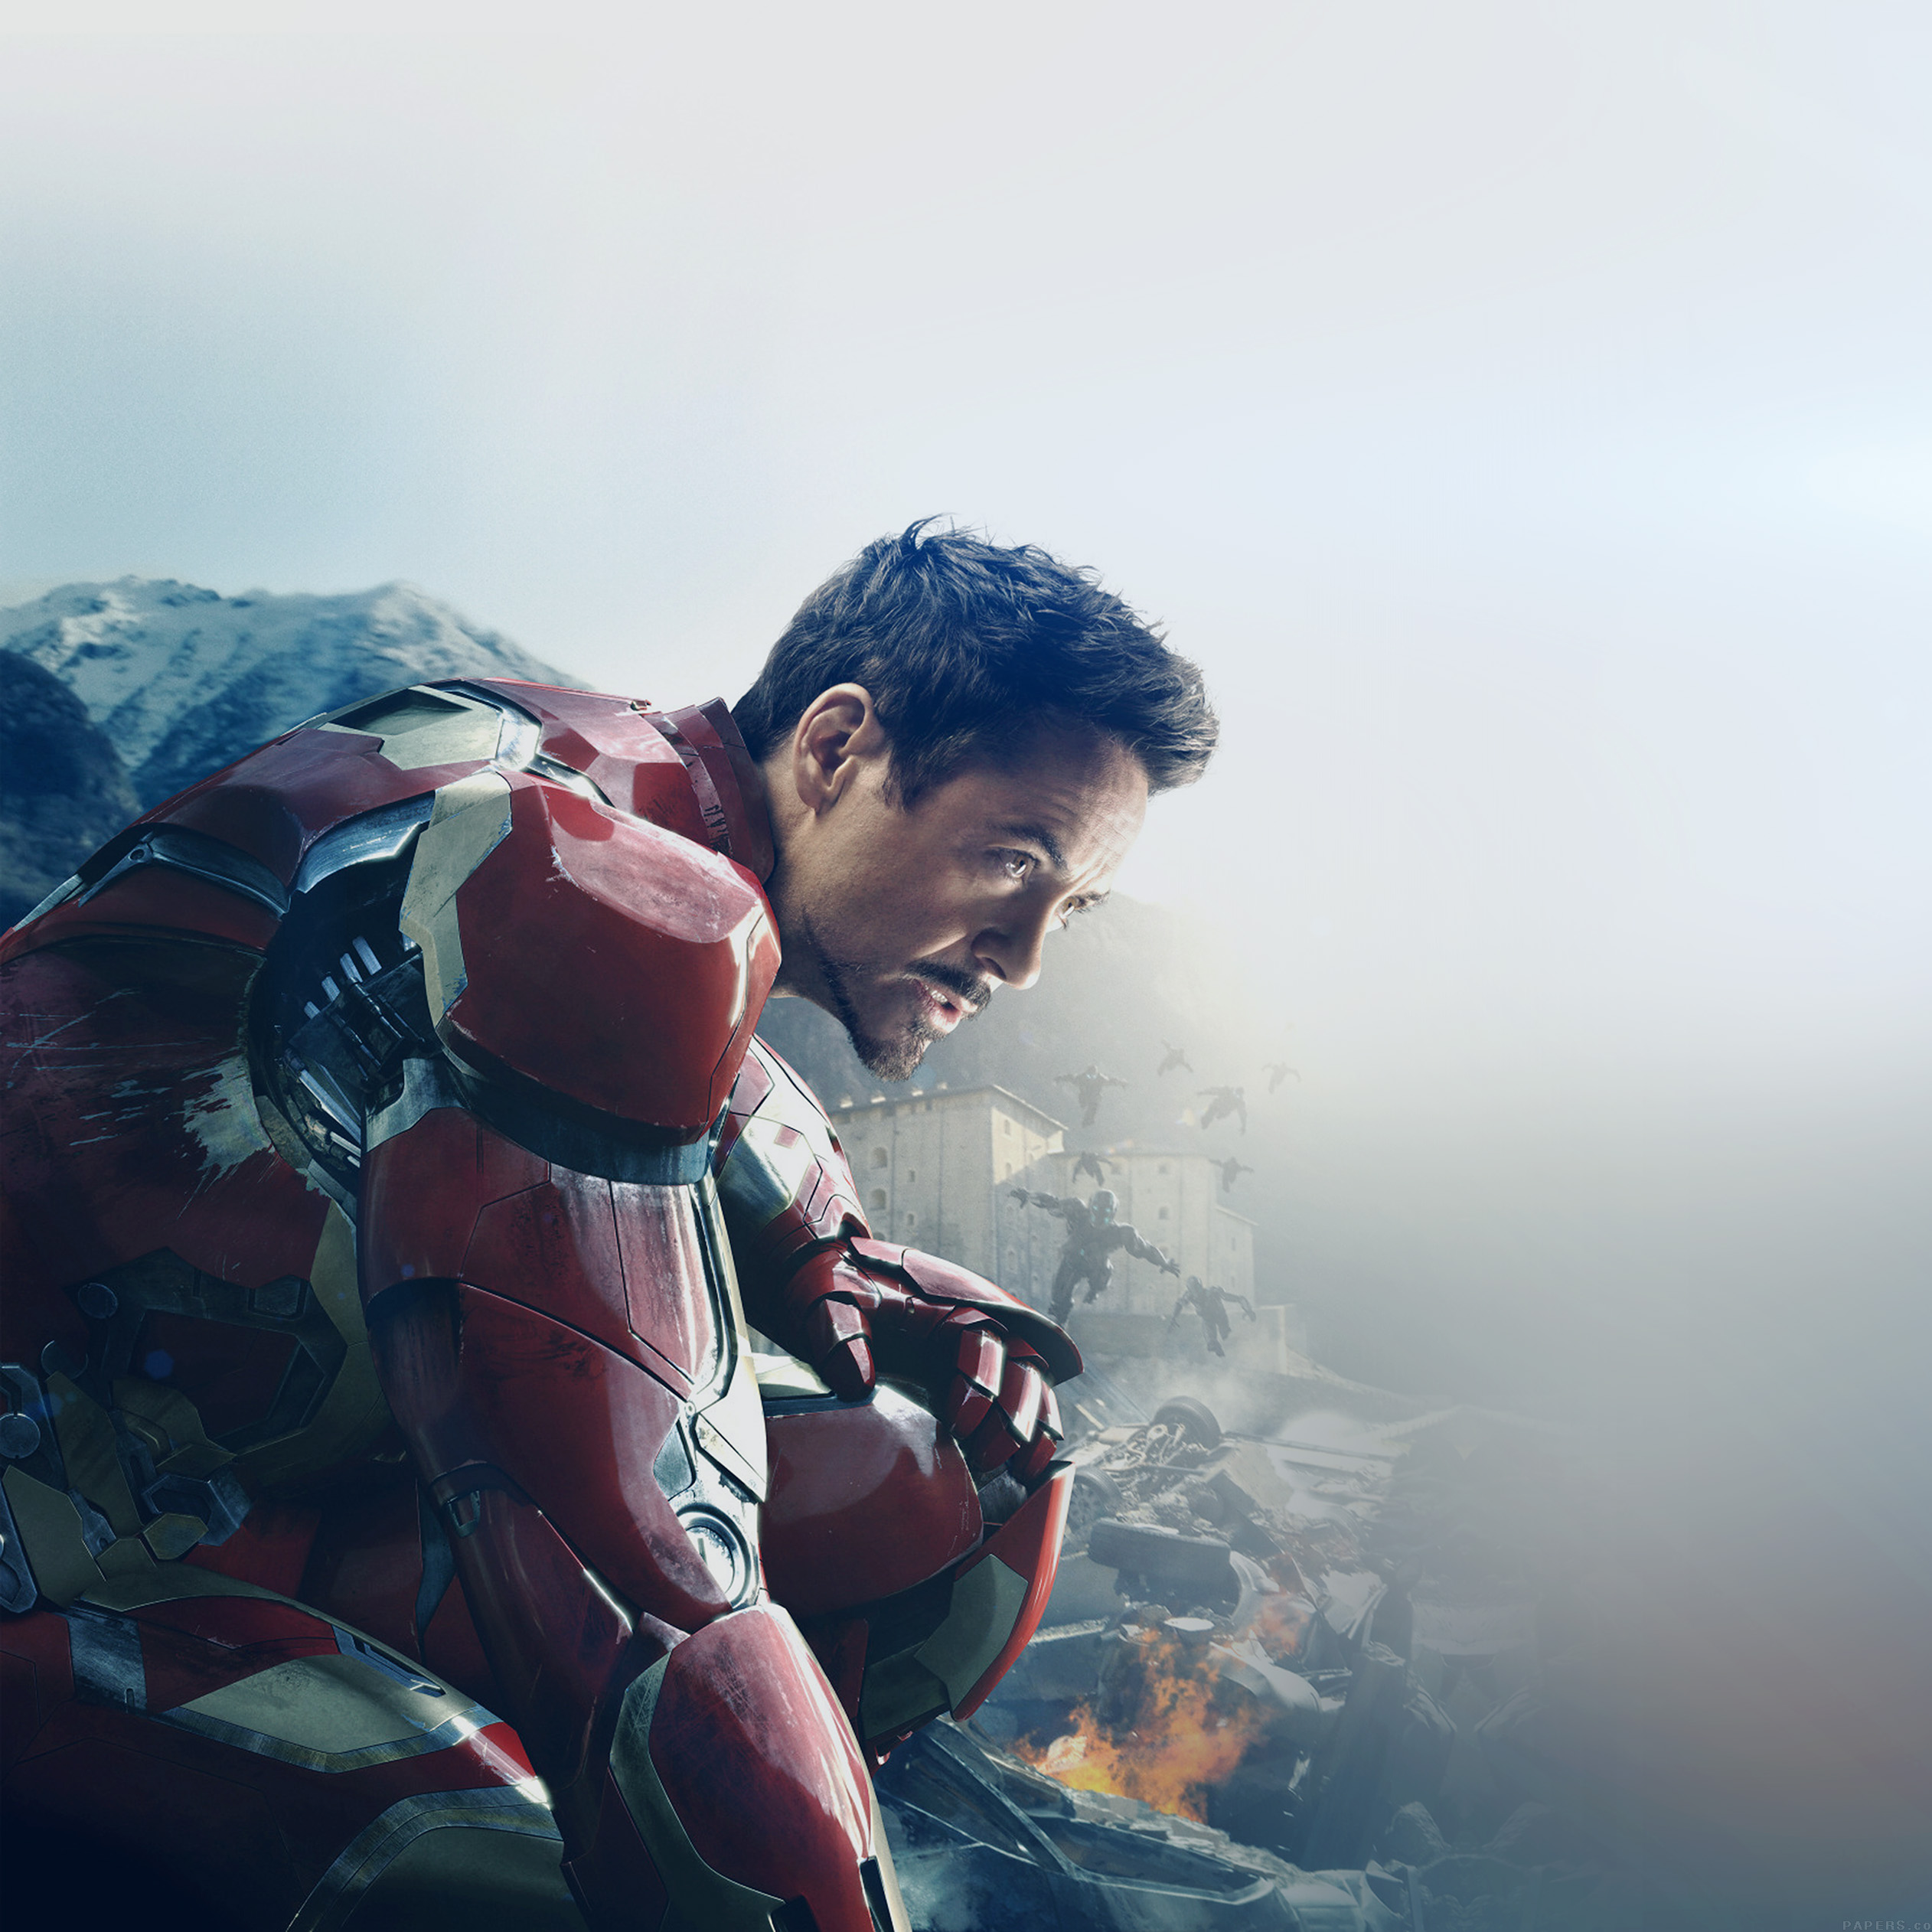 How To Set A Gif As Your Wallpaper Iphone Avengers Wallpapers For Iphone Ipad And Desktop